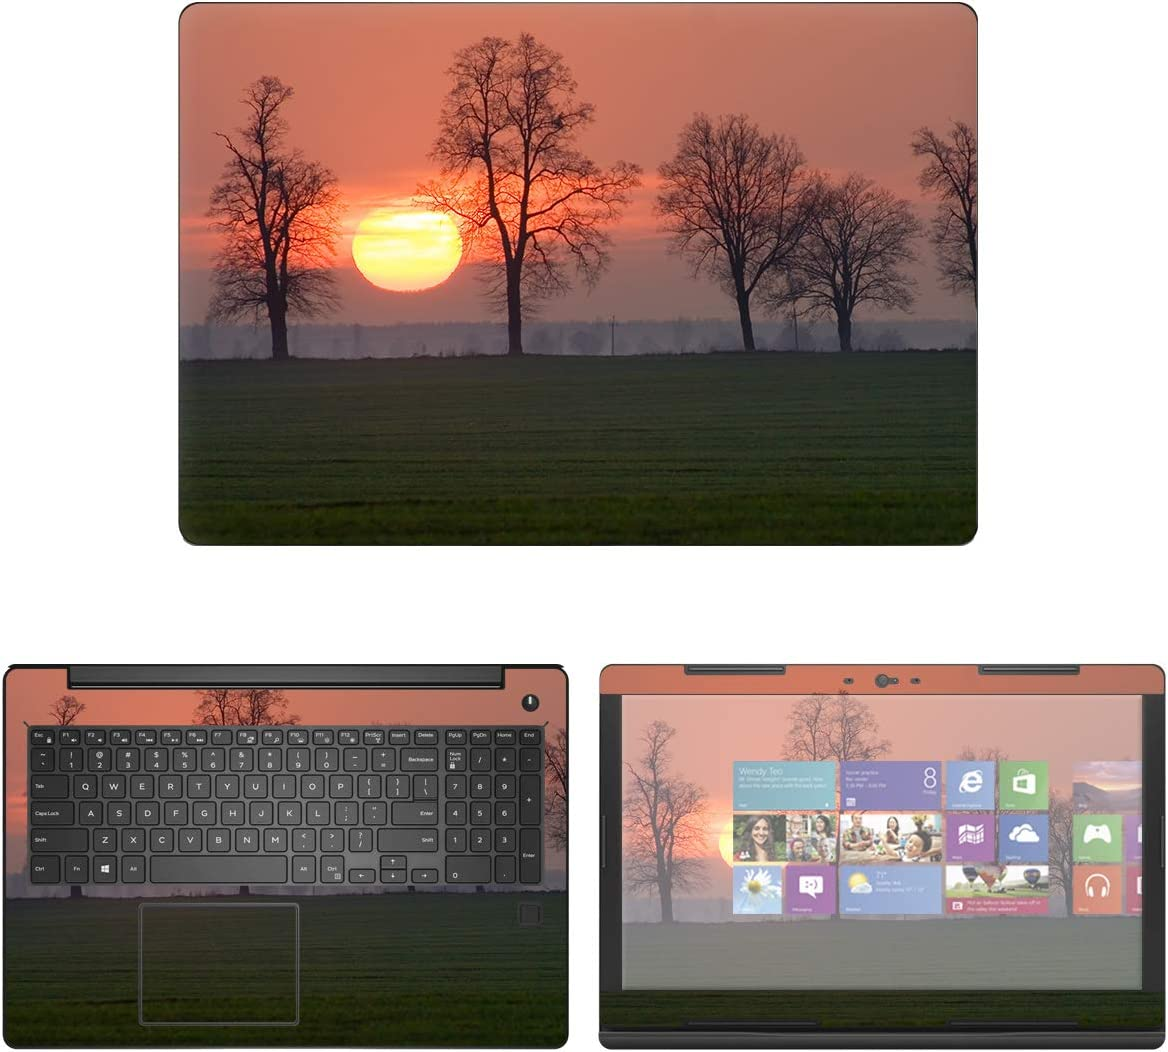 decalrus - Protective Decal Sunset Skin Sticker for Dell Latitude 15 3590 (15.6